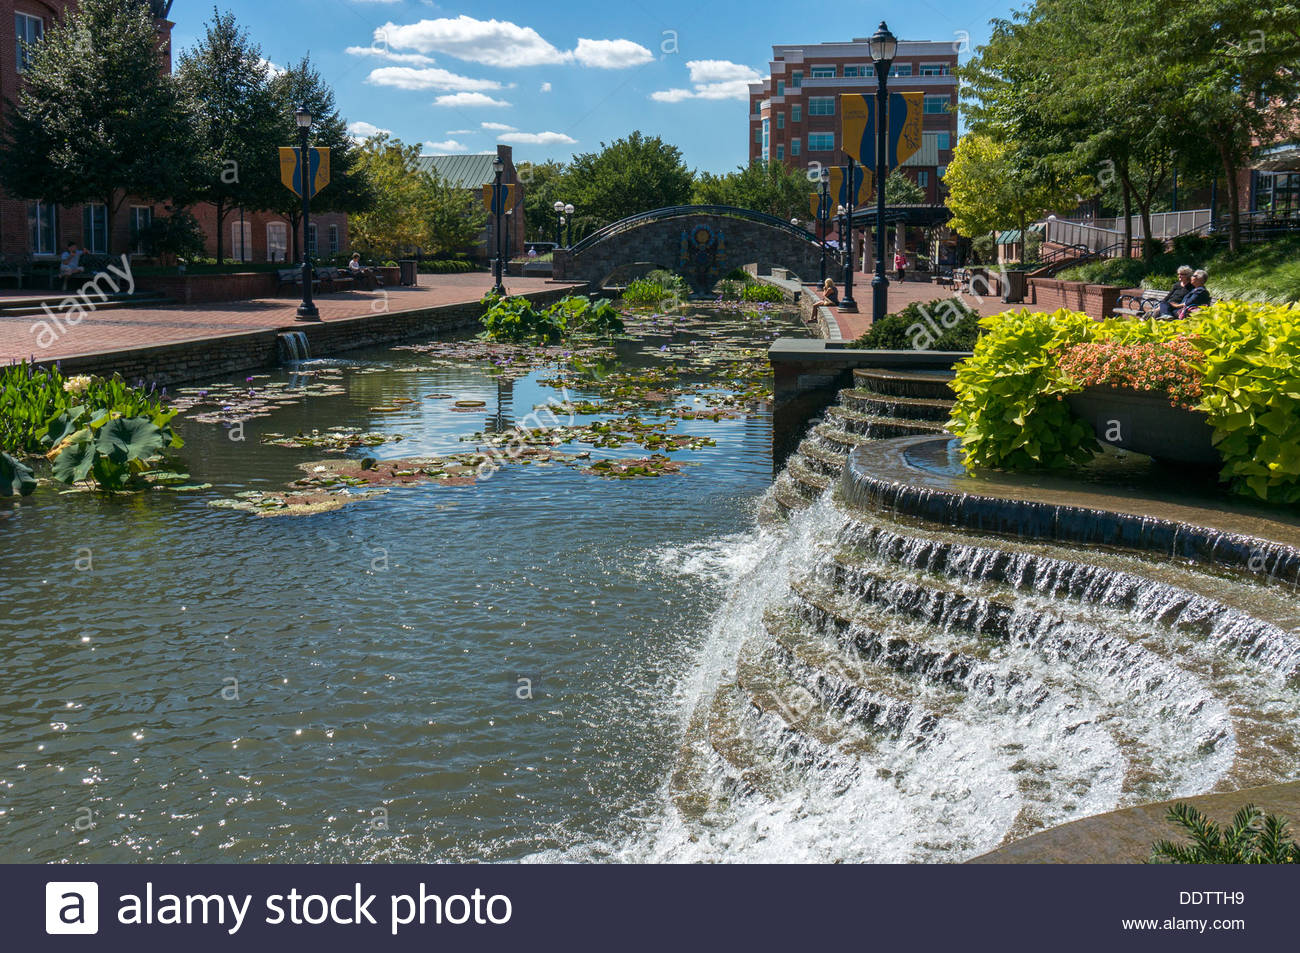 Promenade and waterfall in Carroll Creek Park in Frederick, Maryland - Stock Image